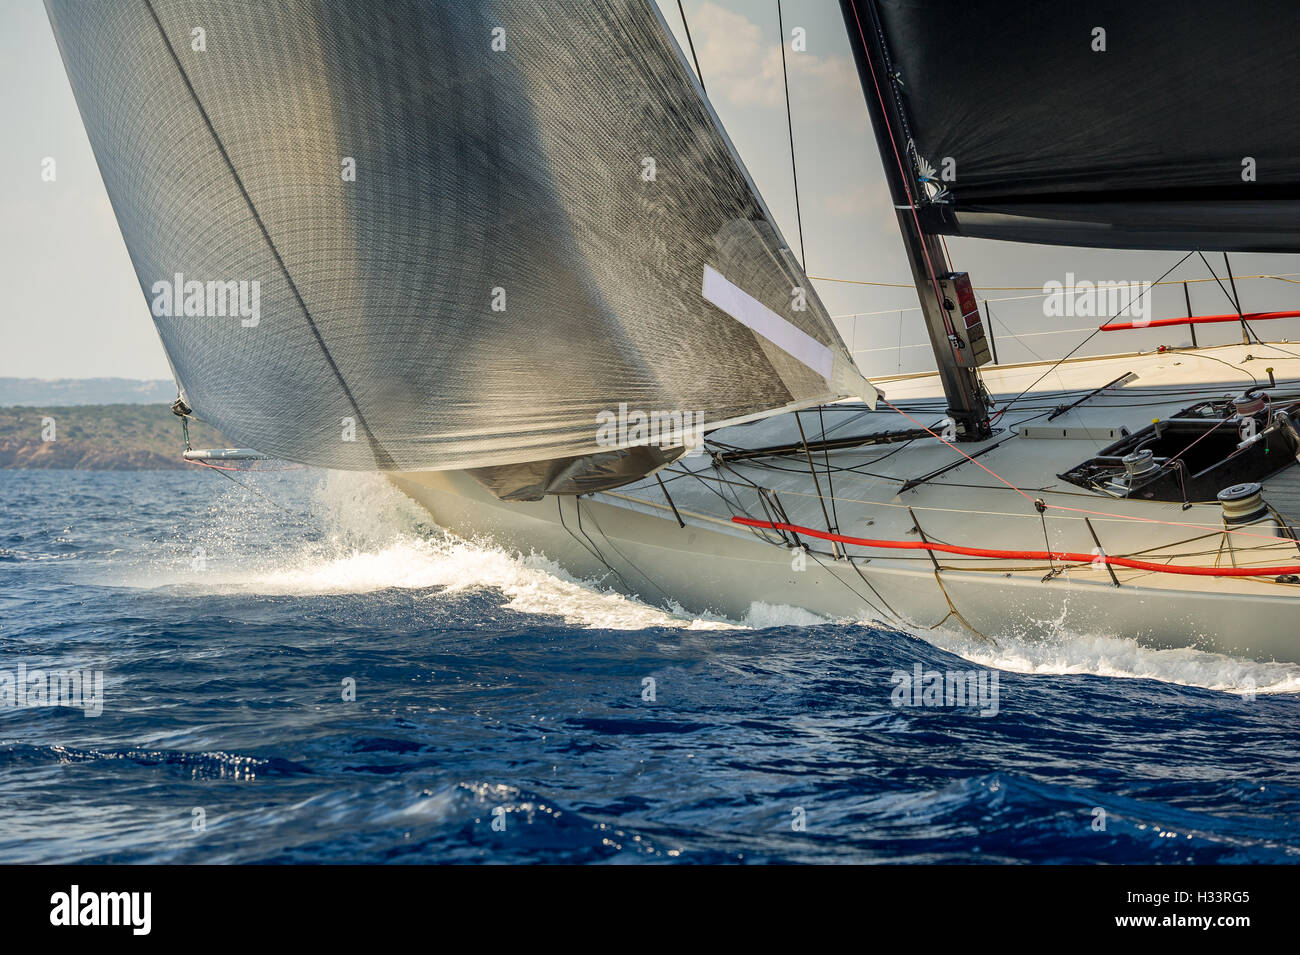 Racing sailing yacht going fast in the Mediterranean sea - Stock Image